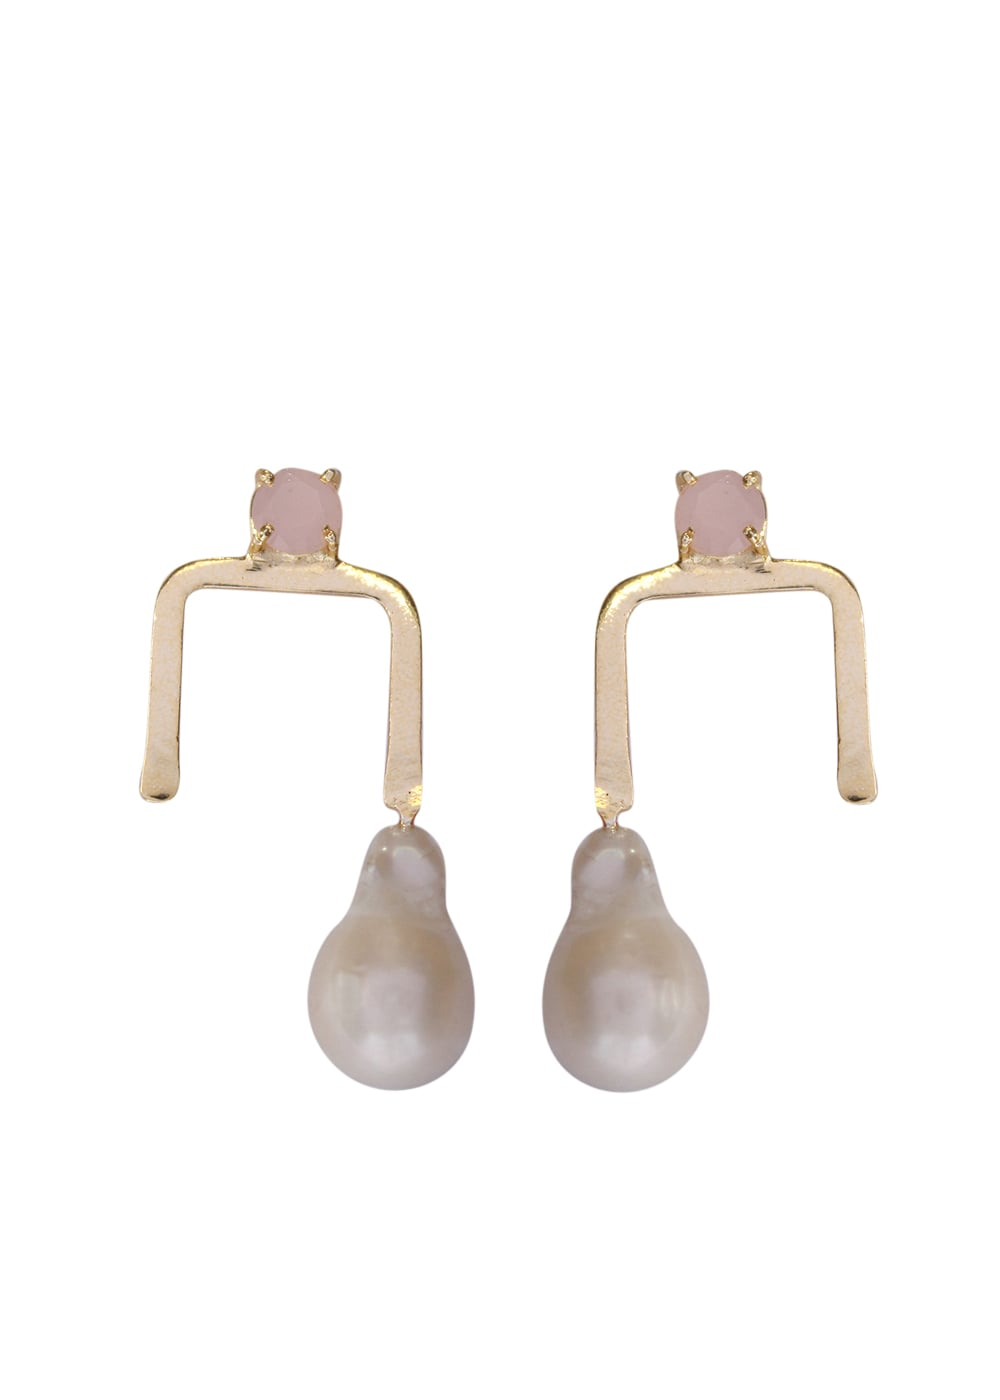 Rose Quartz Baroque Drop Earrings - Ssoul Eternal You